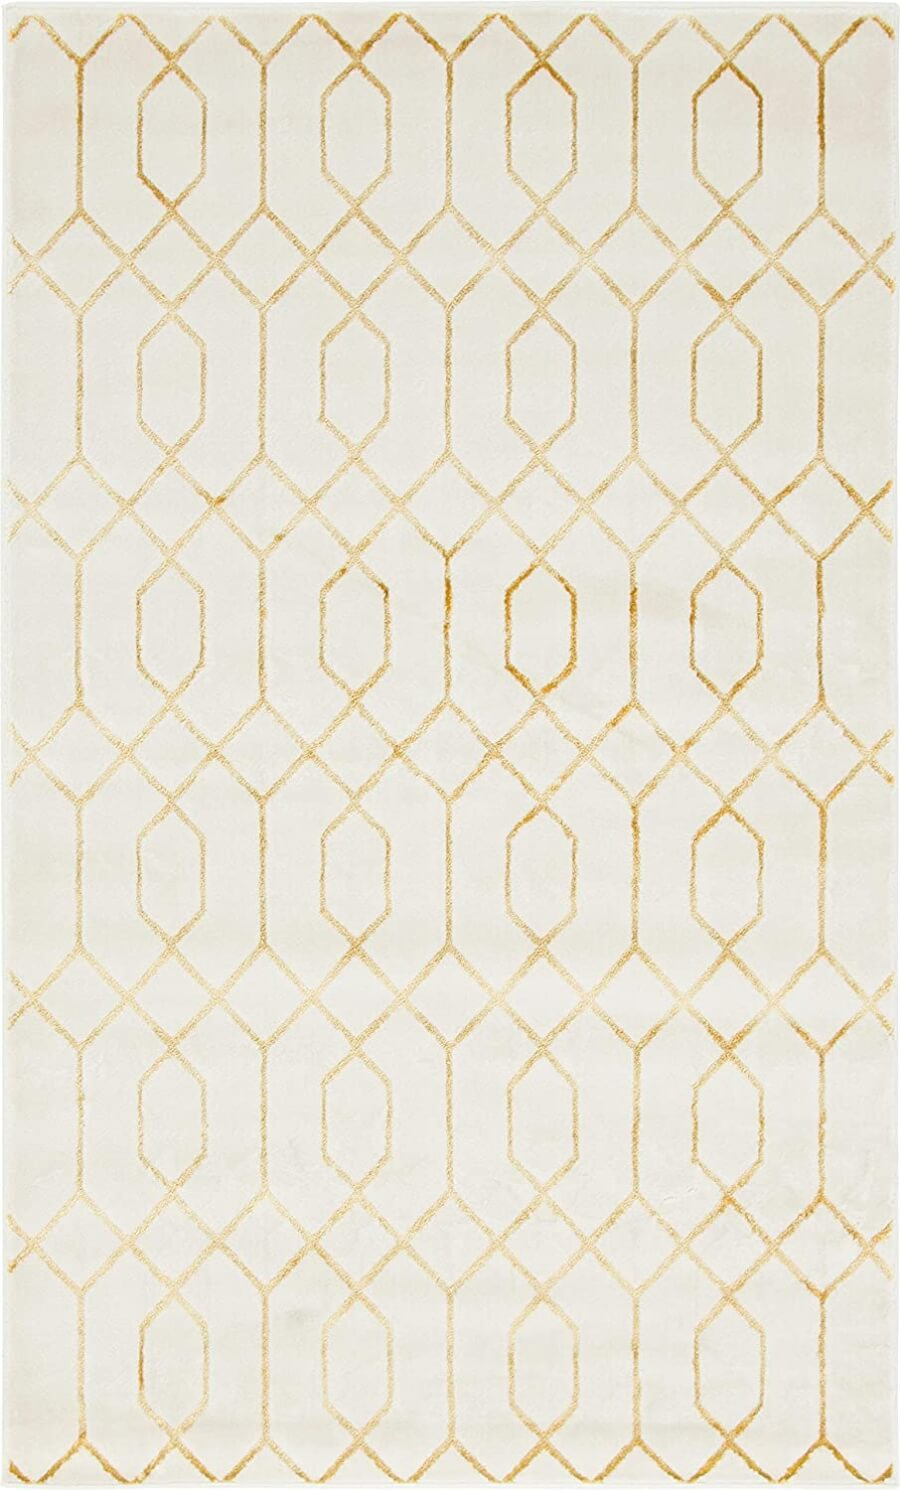 Classic Gold Ivory Rug